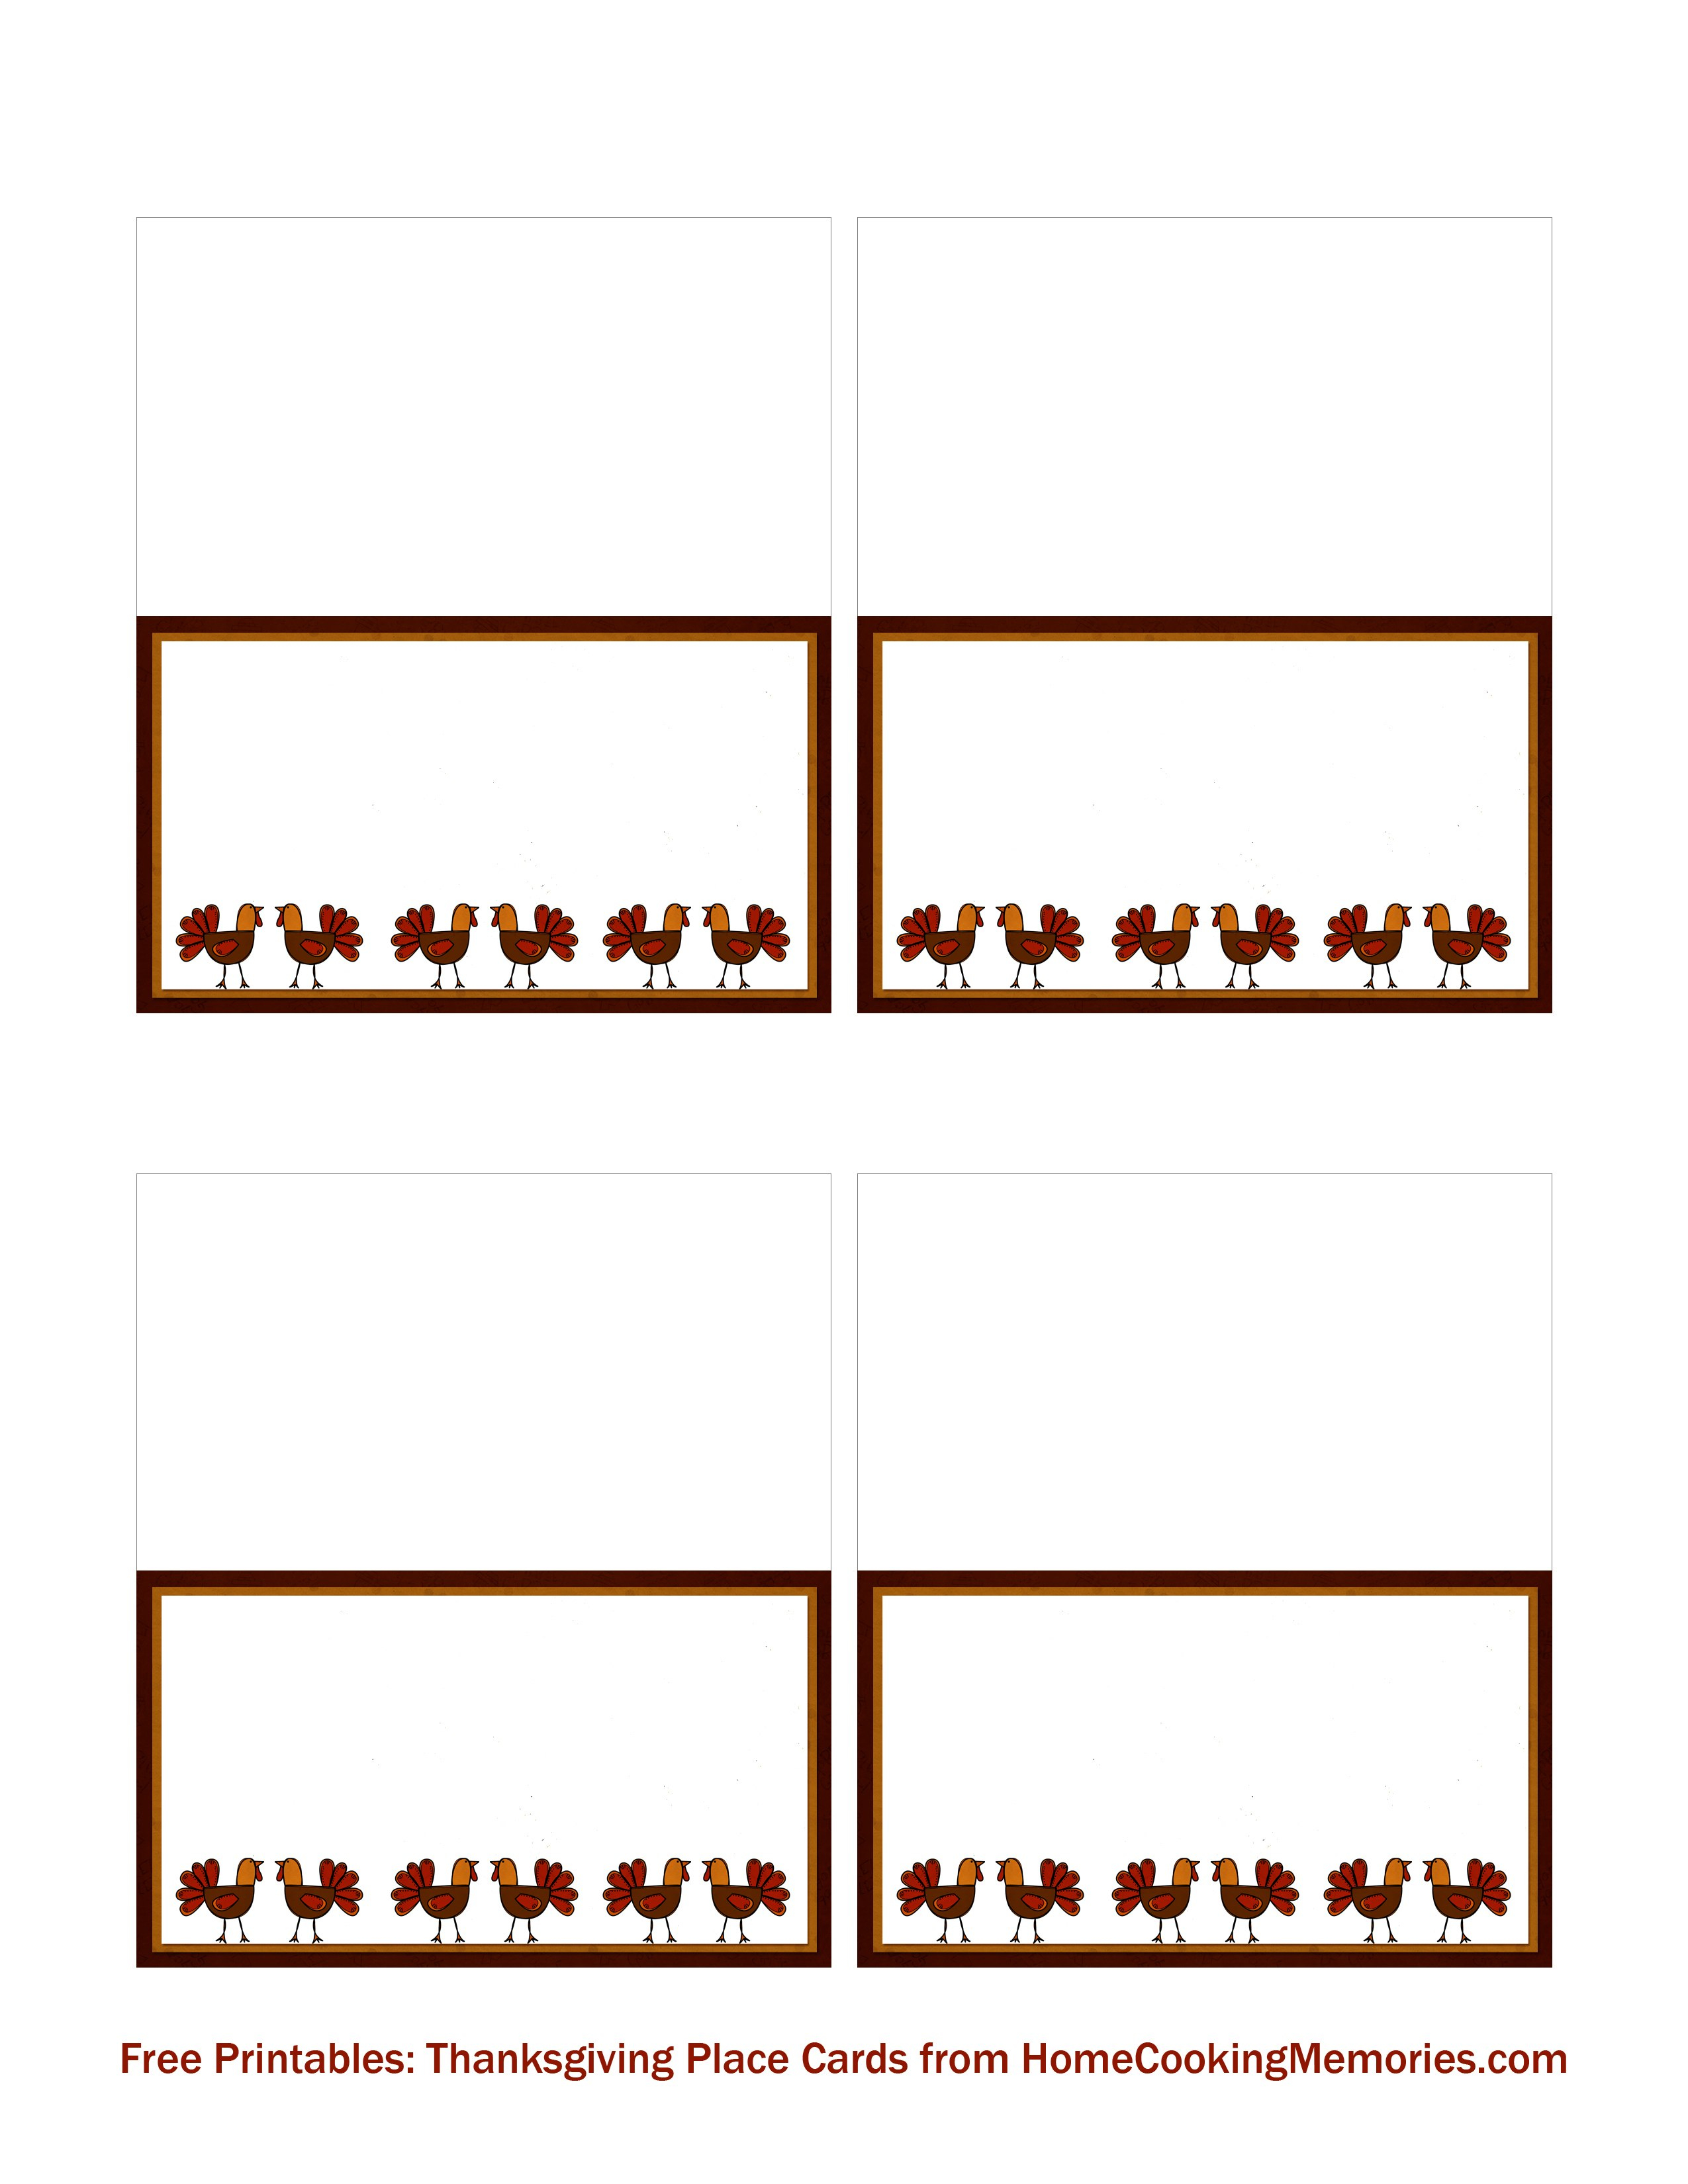 Free Printables Thanksgiving Place Cards  Home Cooking Memories With Regard To Free Template For Place Cards 6 Per Sheet